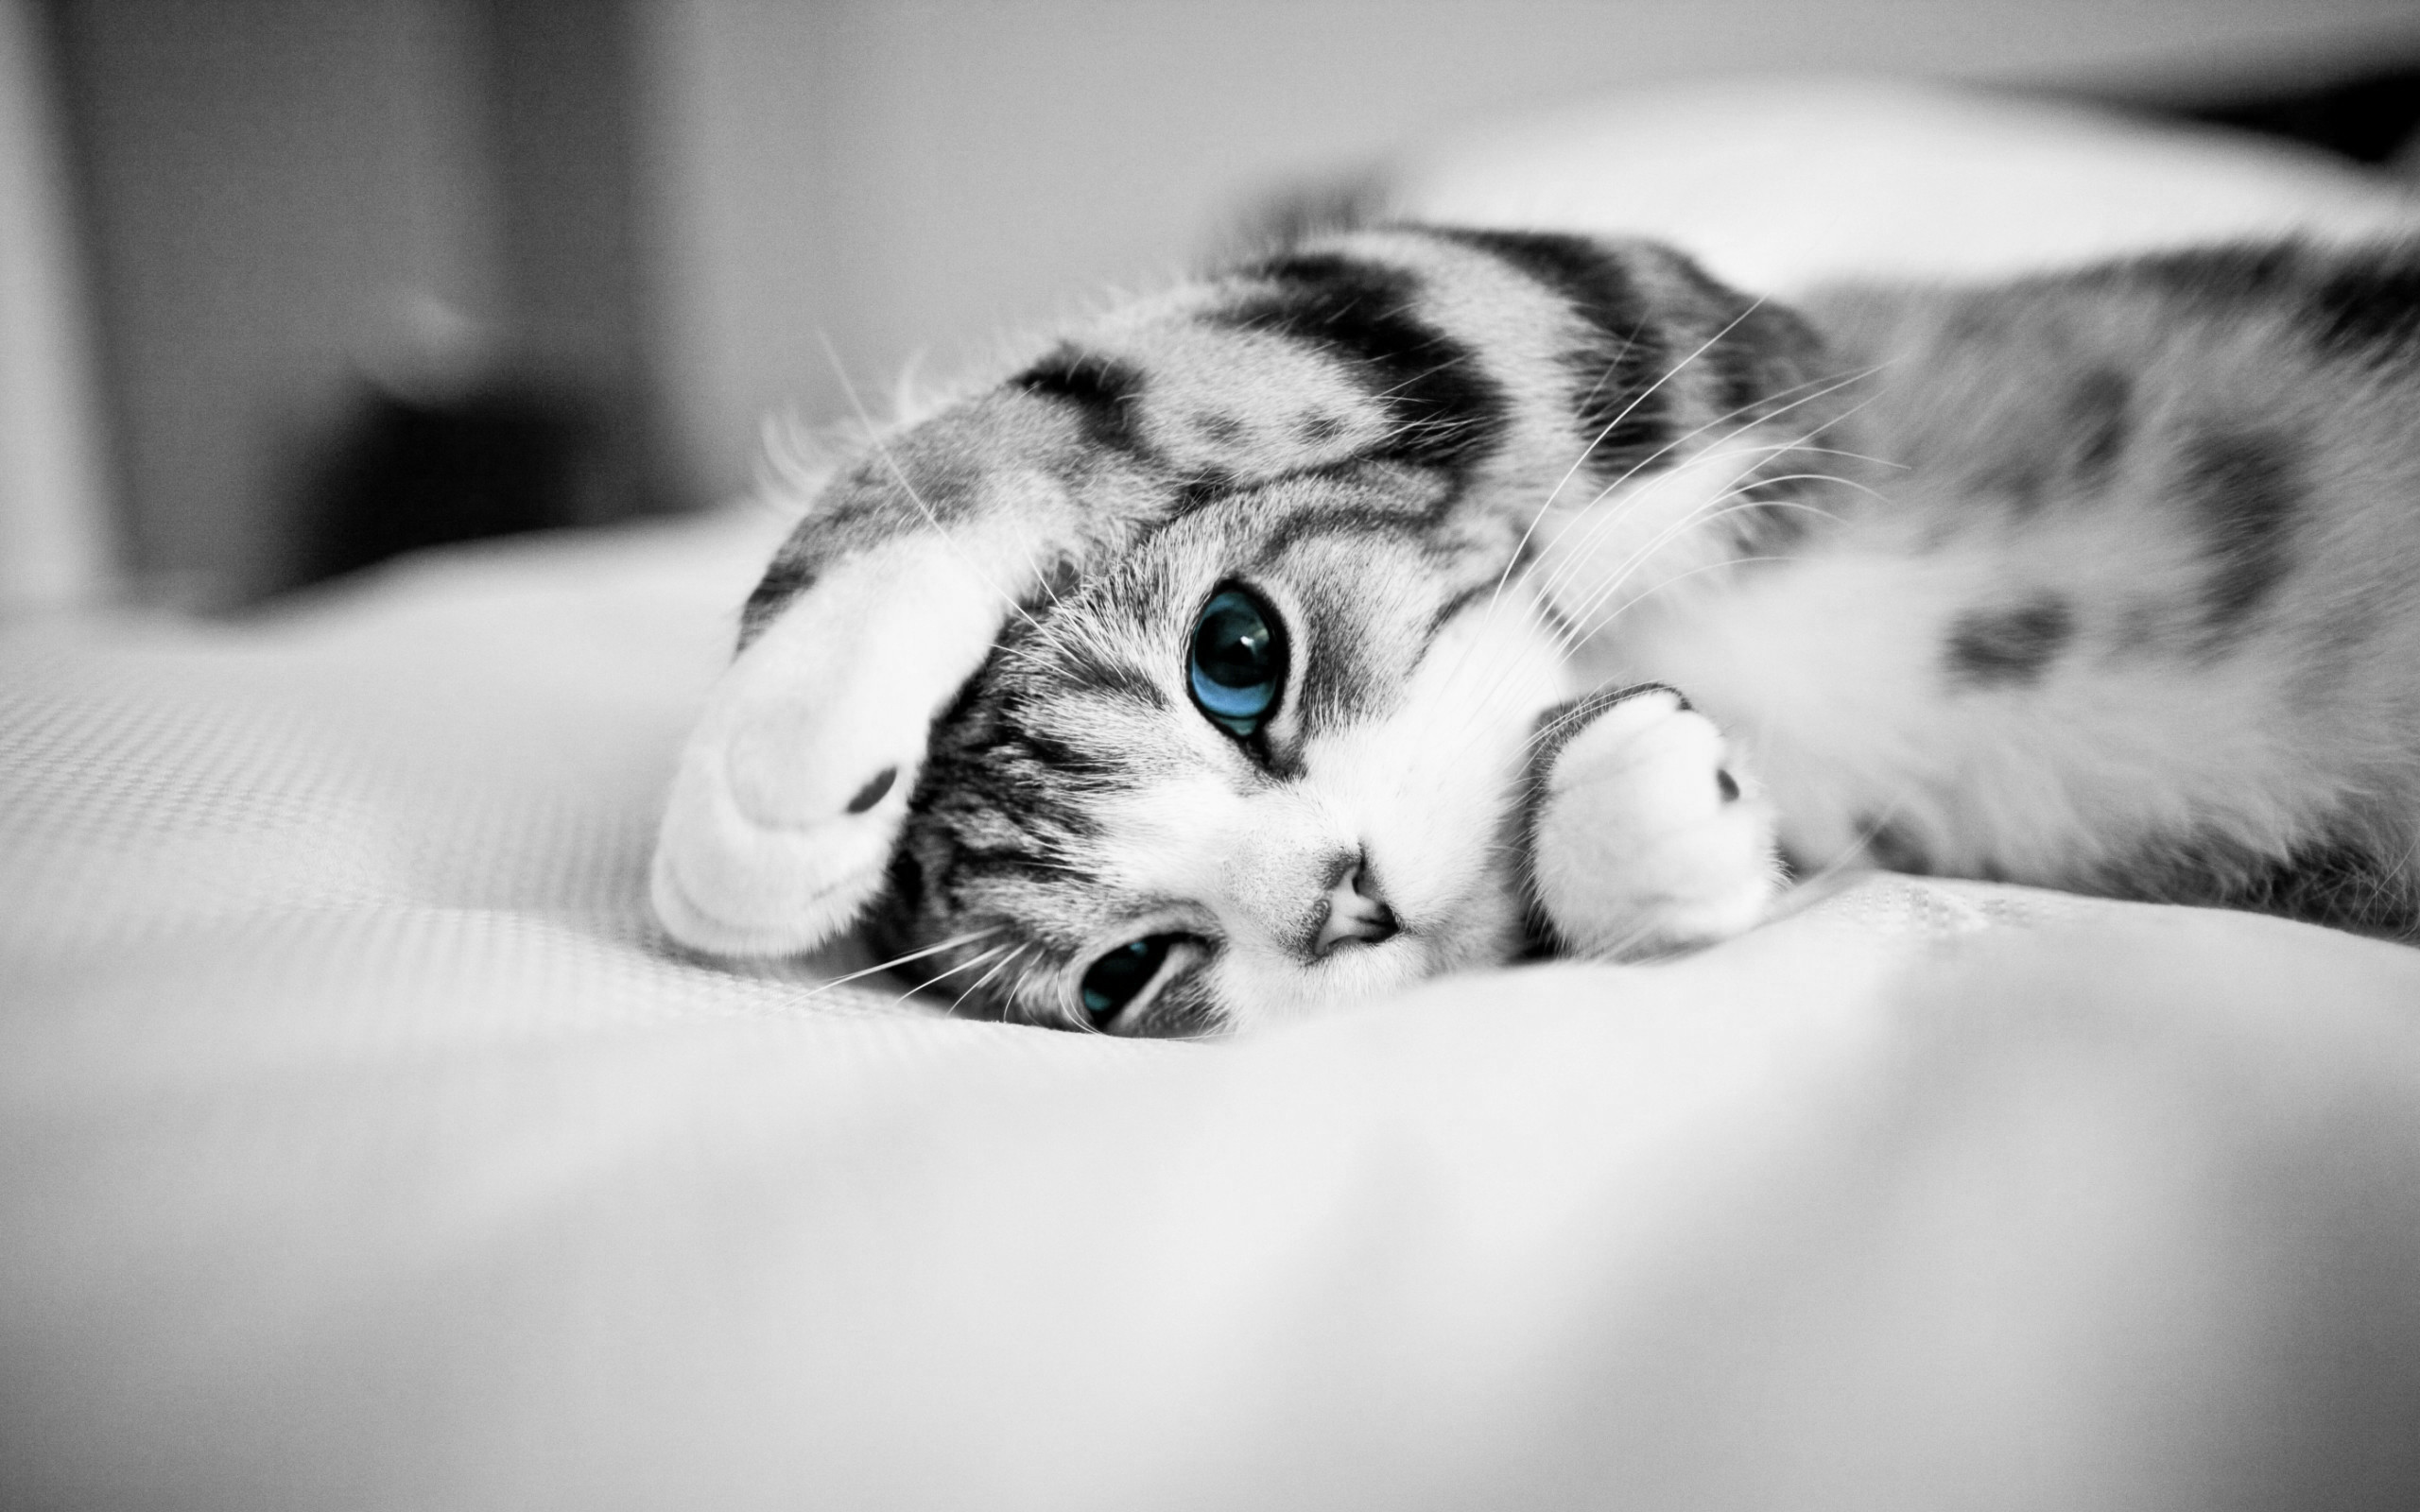 … free cat wallpapers for android long wallpapers …